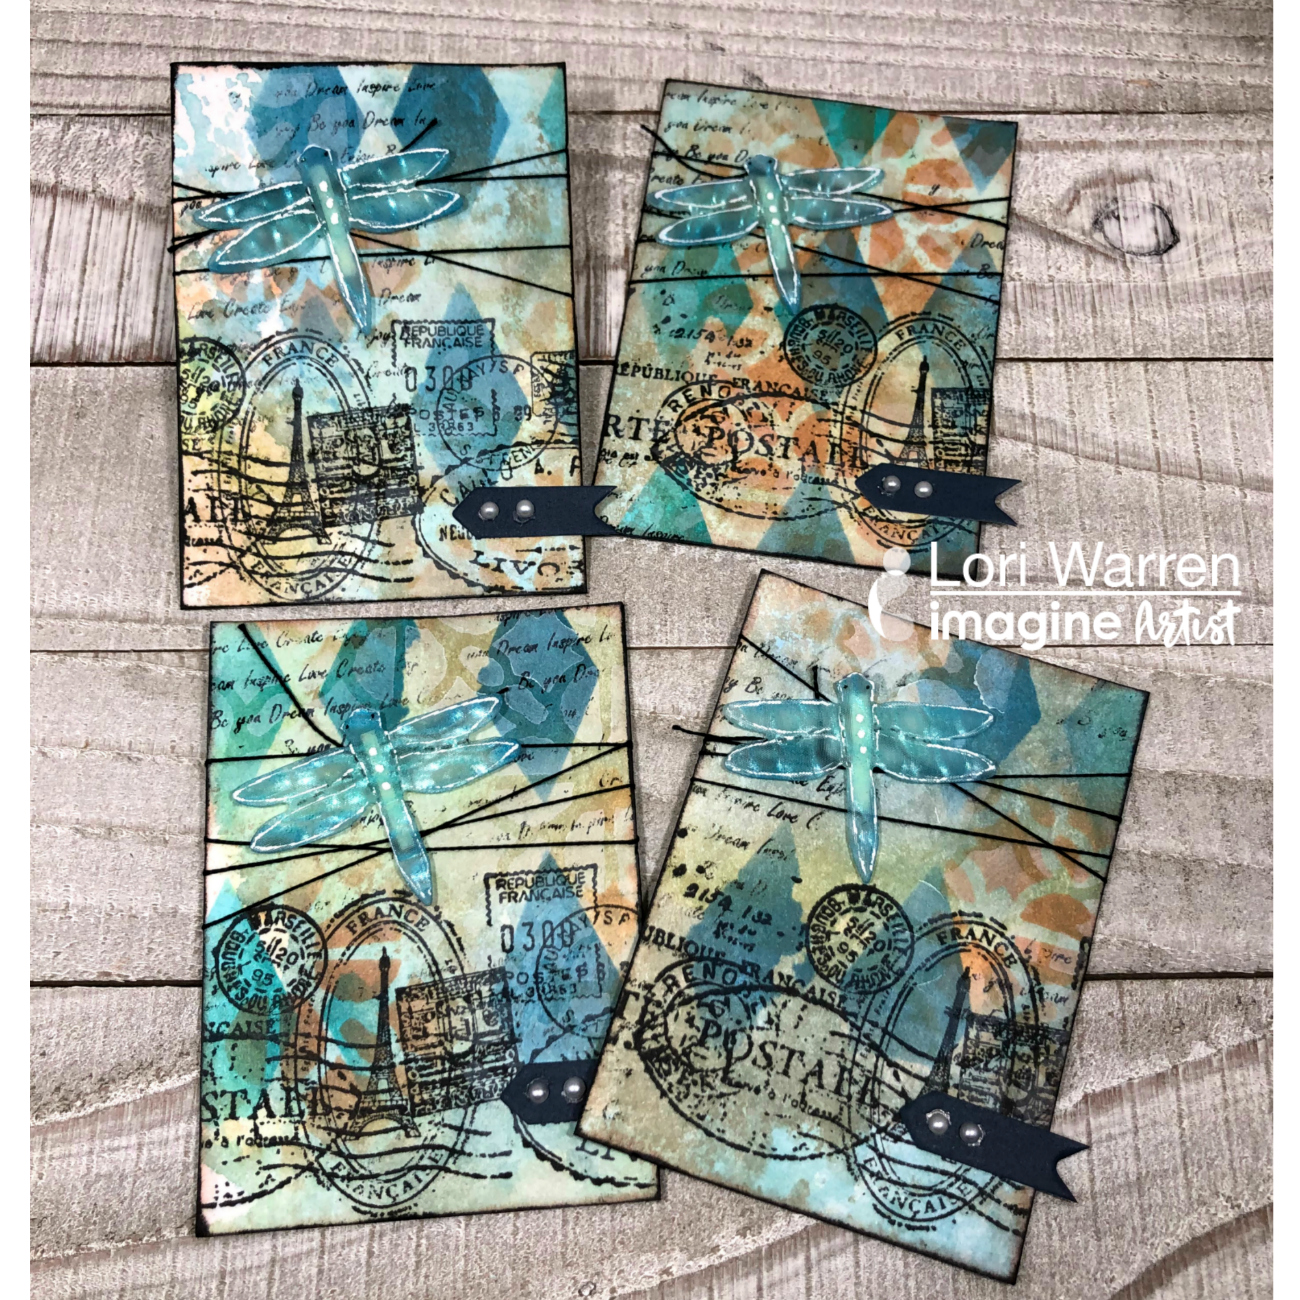 Artist trading cards featuring dragonflies made out of Vertigo crafting sheets.